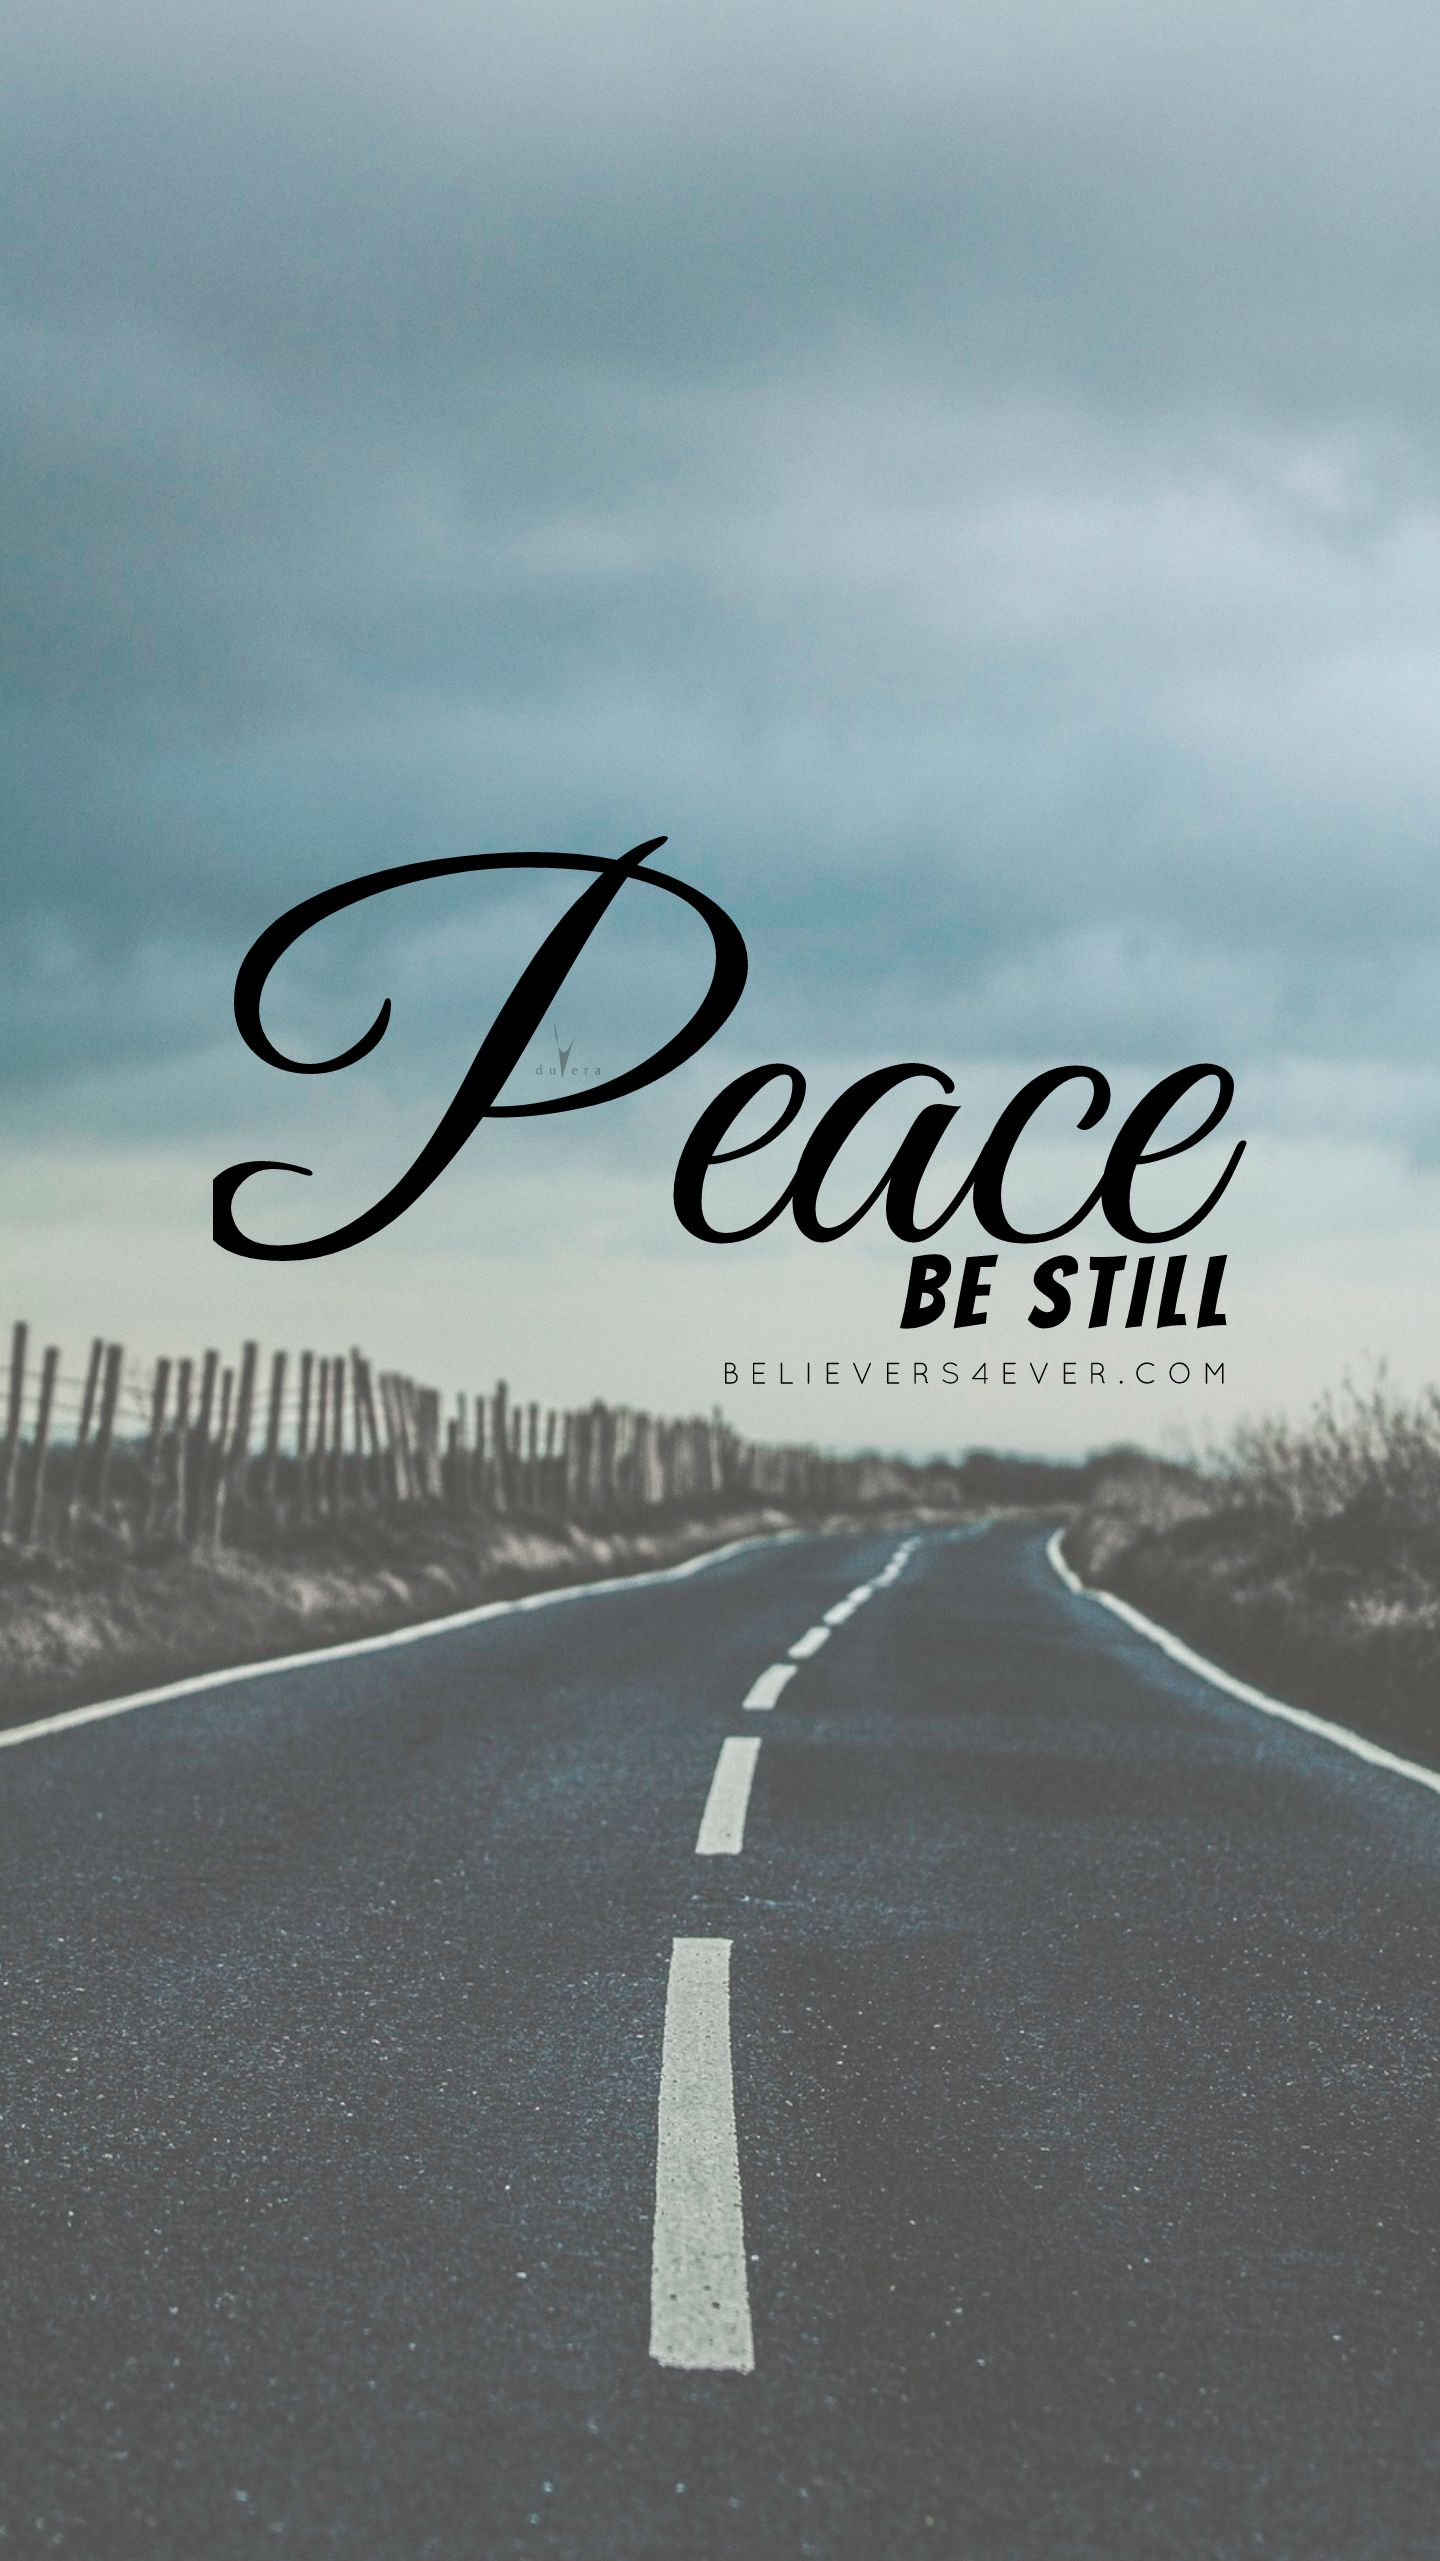 peace be still free christian lock screen wallpaper background for your mobile phone device compatible with iphones and android phones